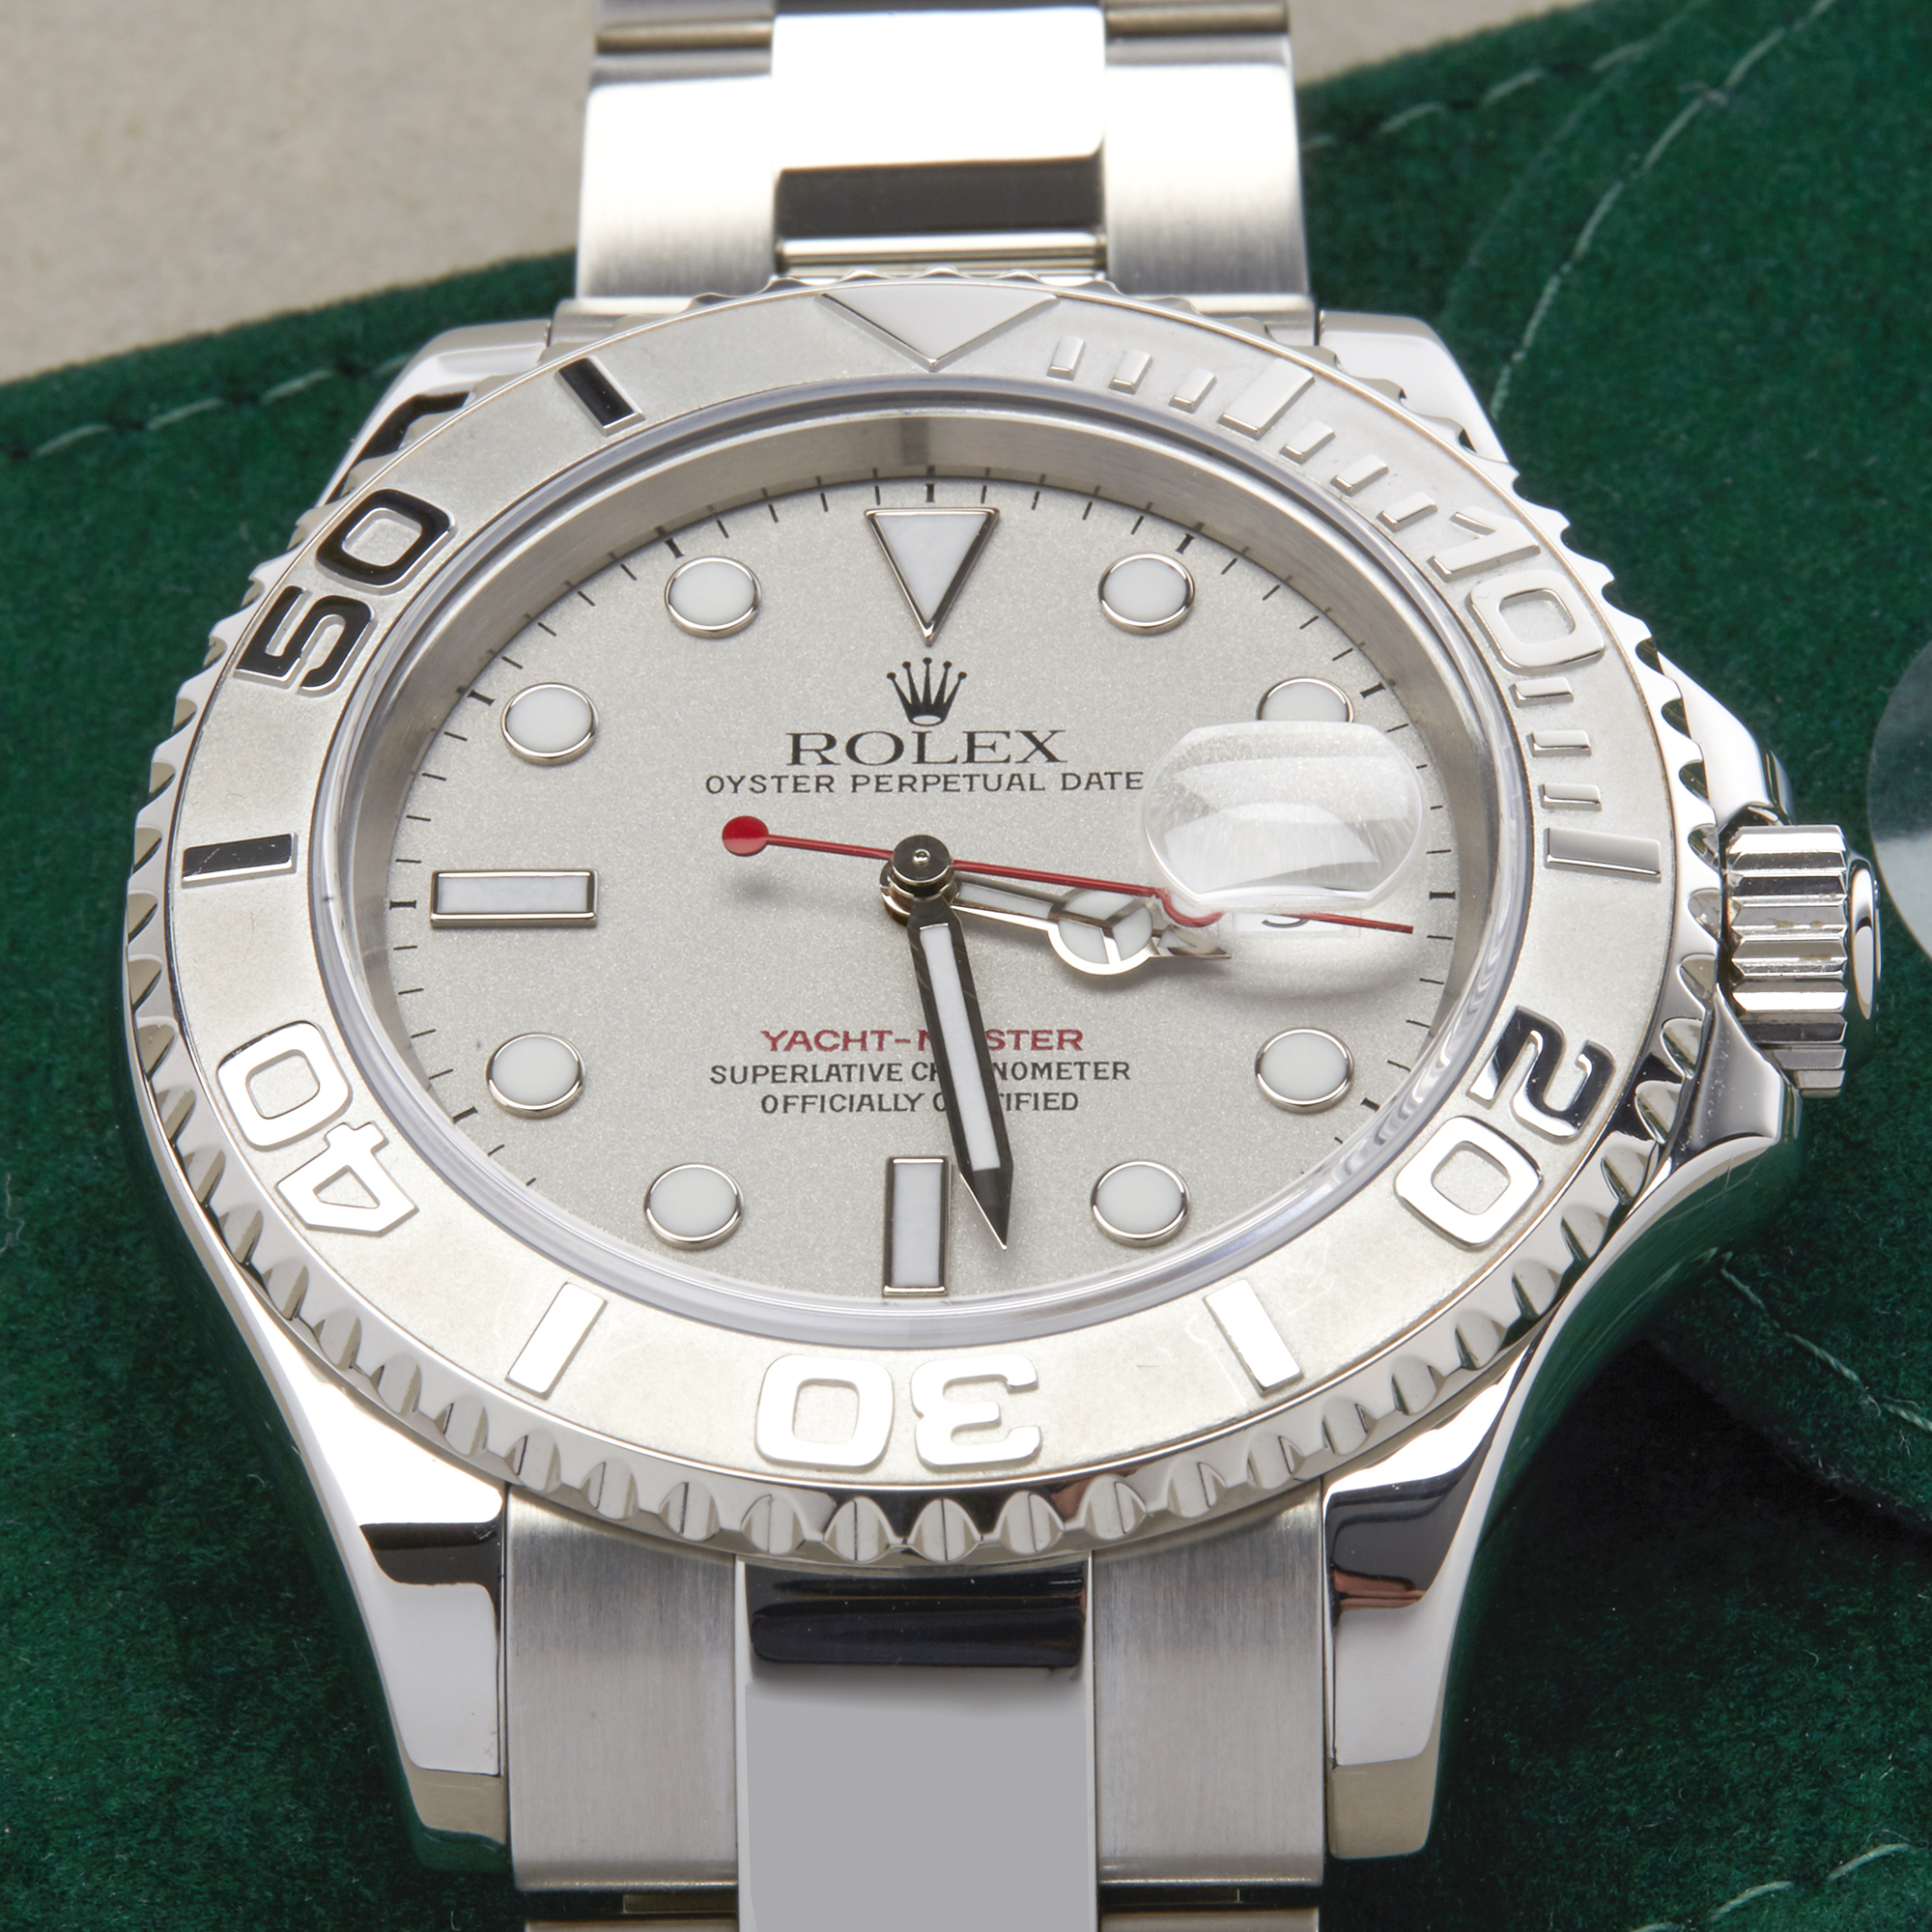 Rolex Yacht-Master 40 16622 Men's Stainless Steel Watch - Image 7 of 10